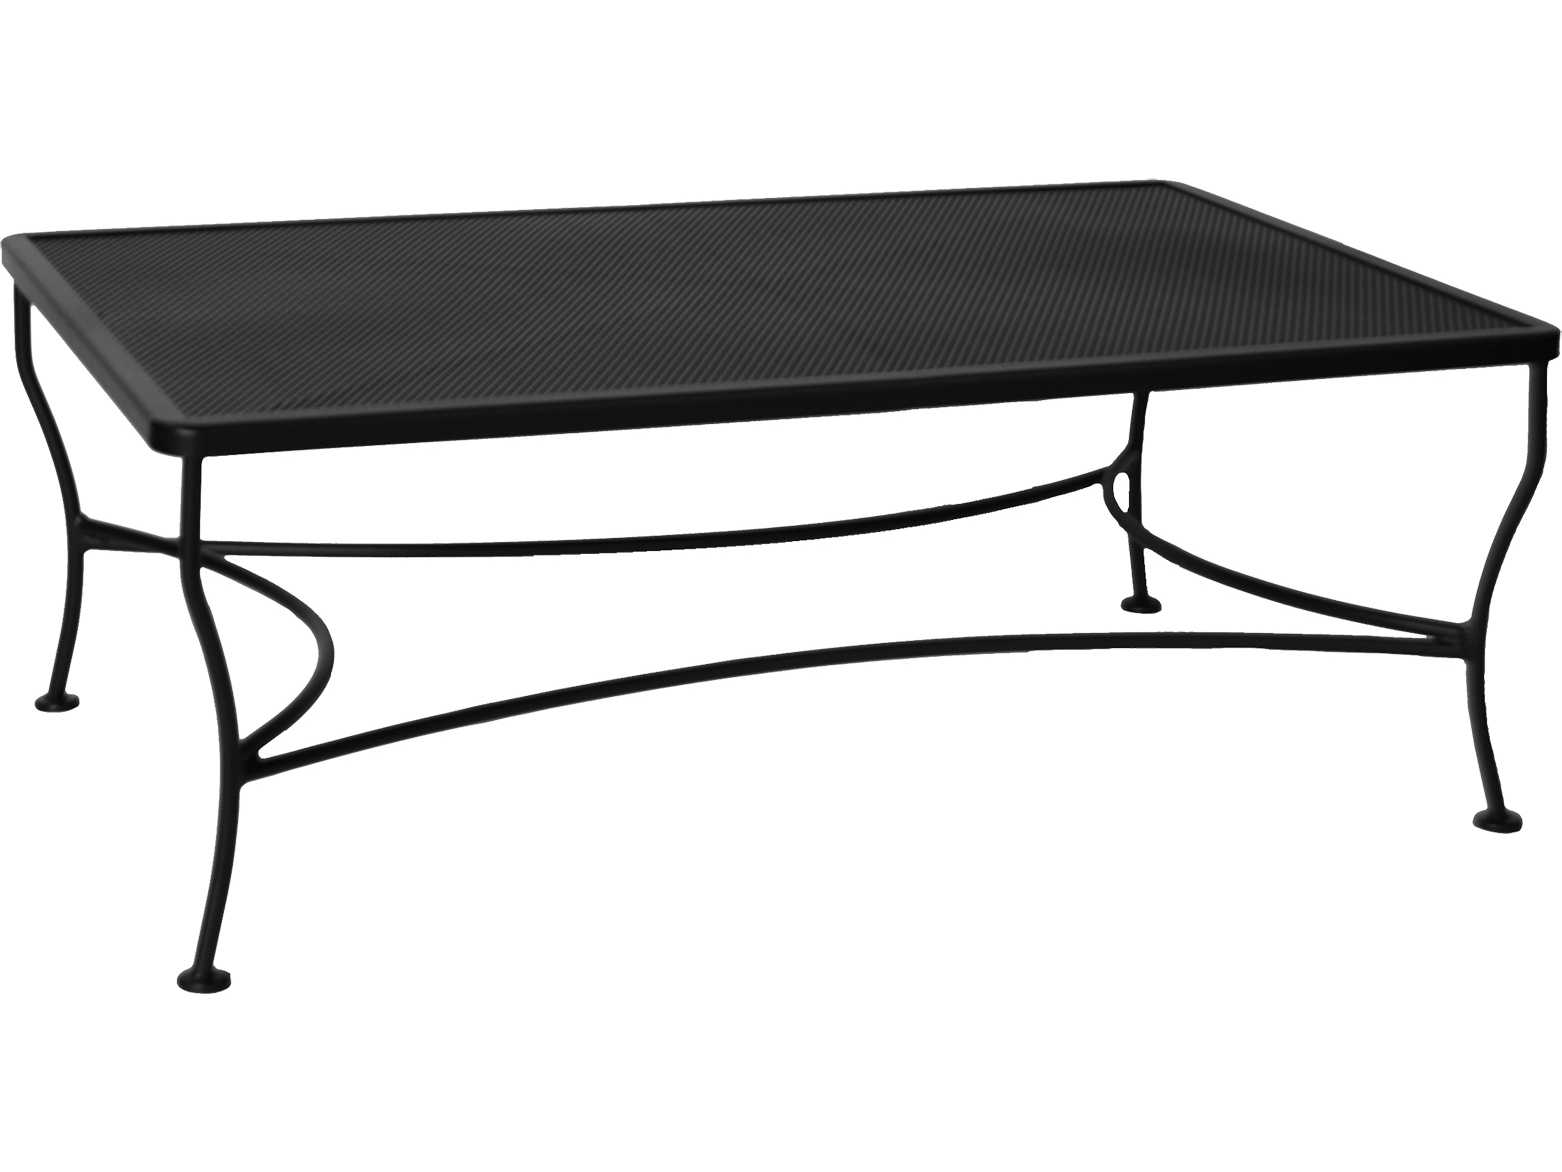 Ow Lee Mesh Wrought Iron 48 X 30 Rectangular Coffee Table 3048 Rtmot